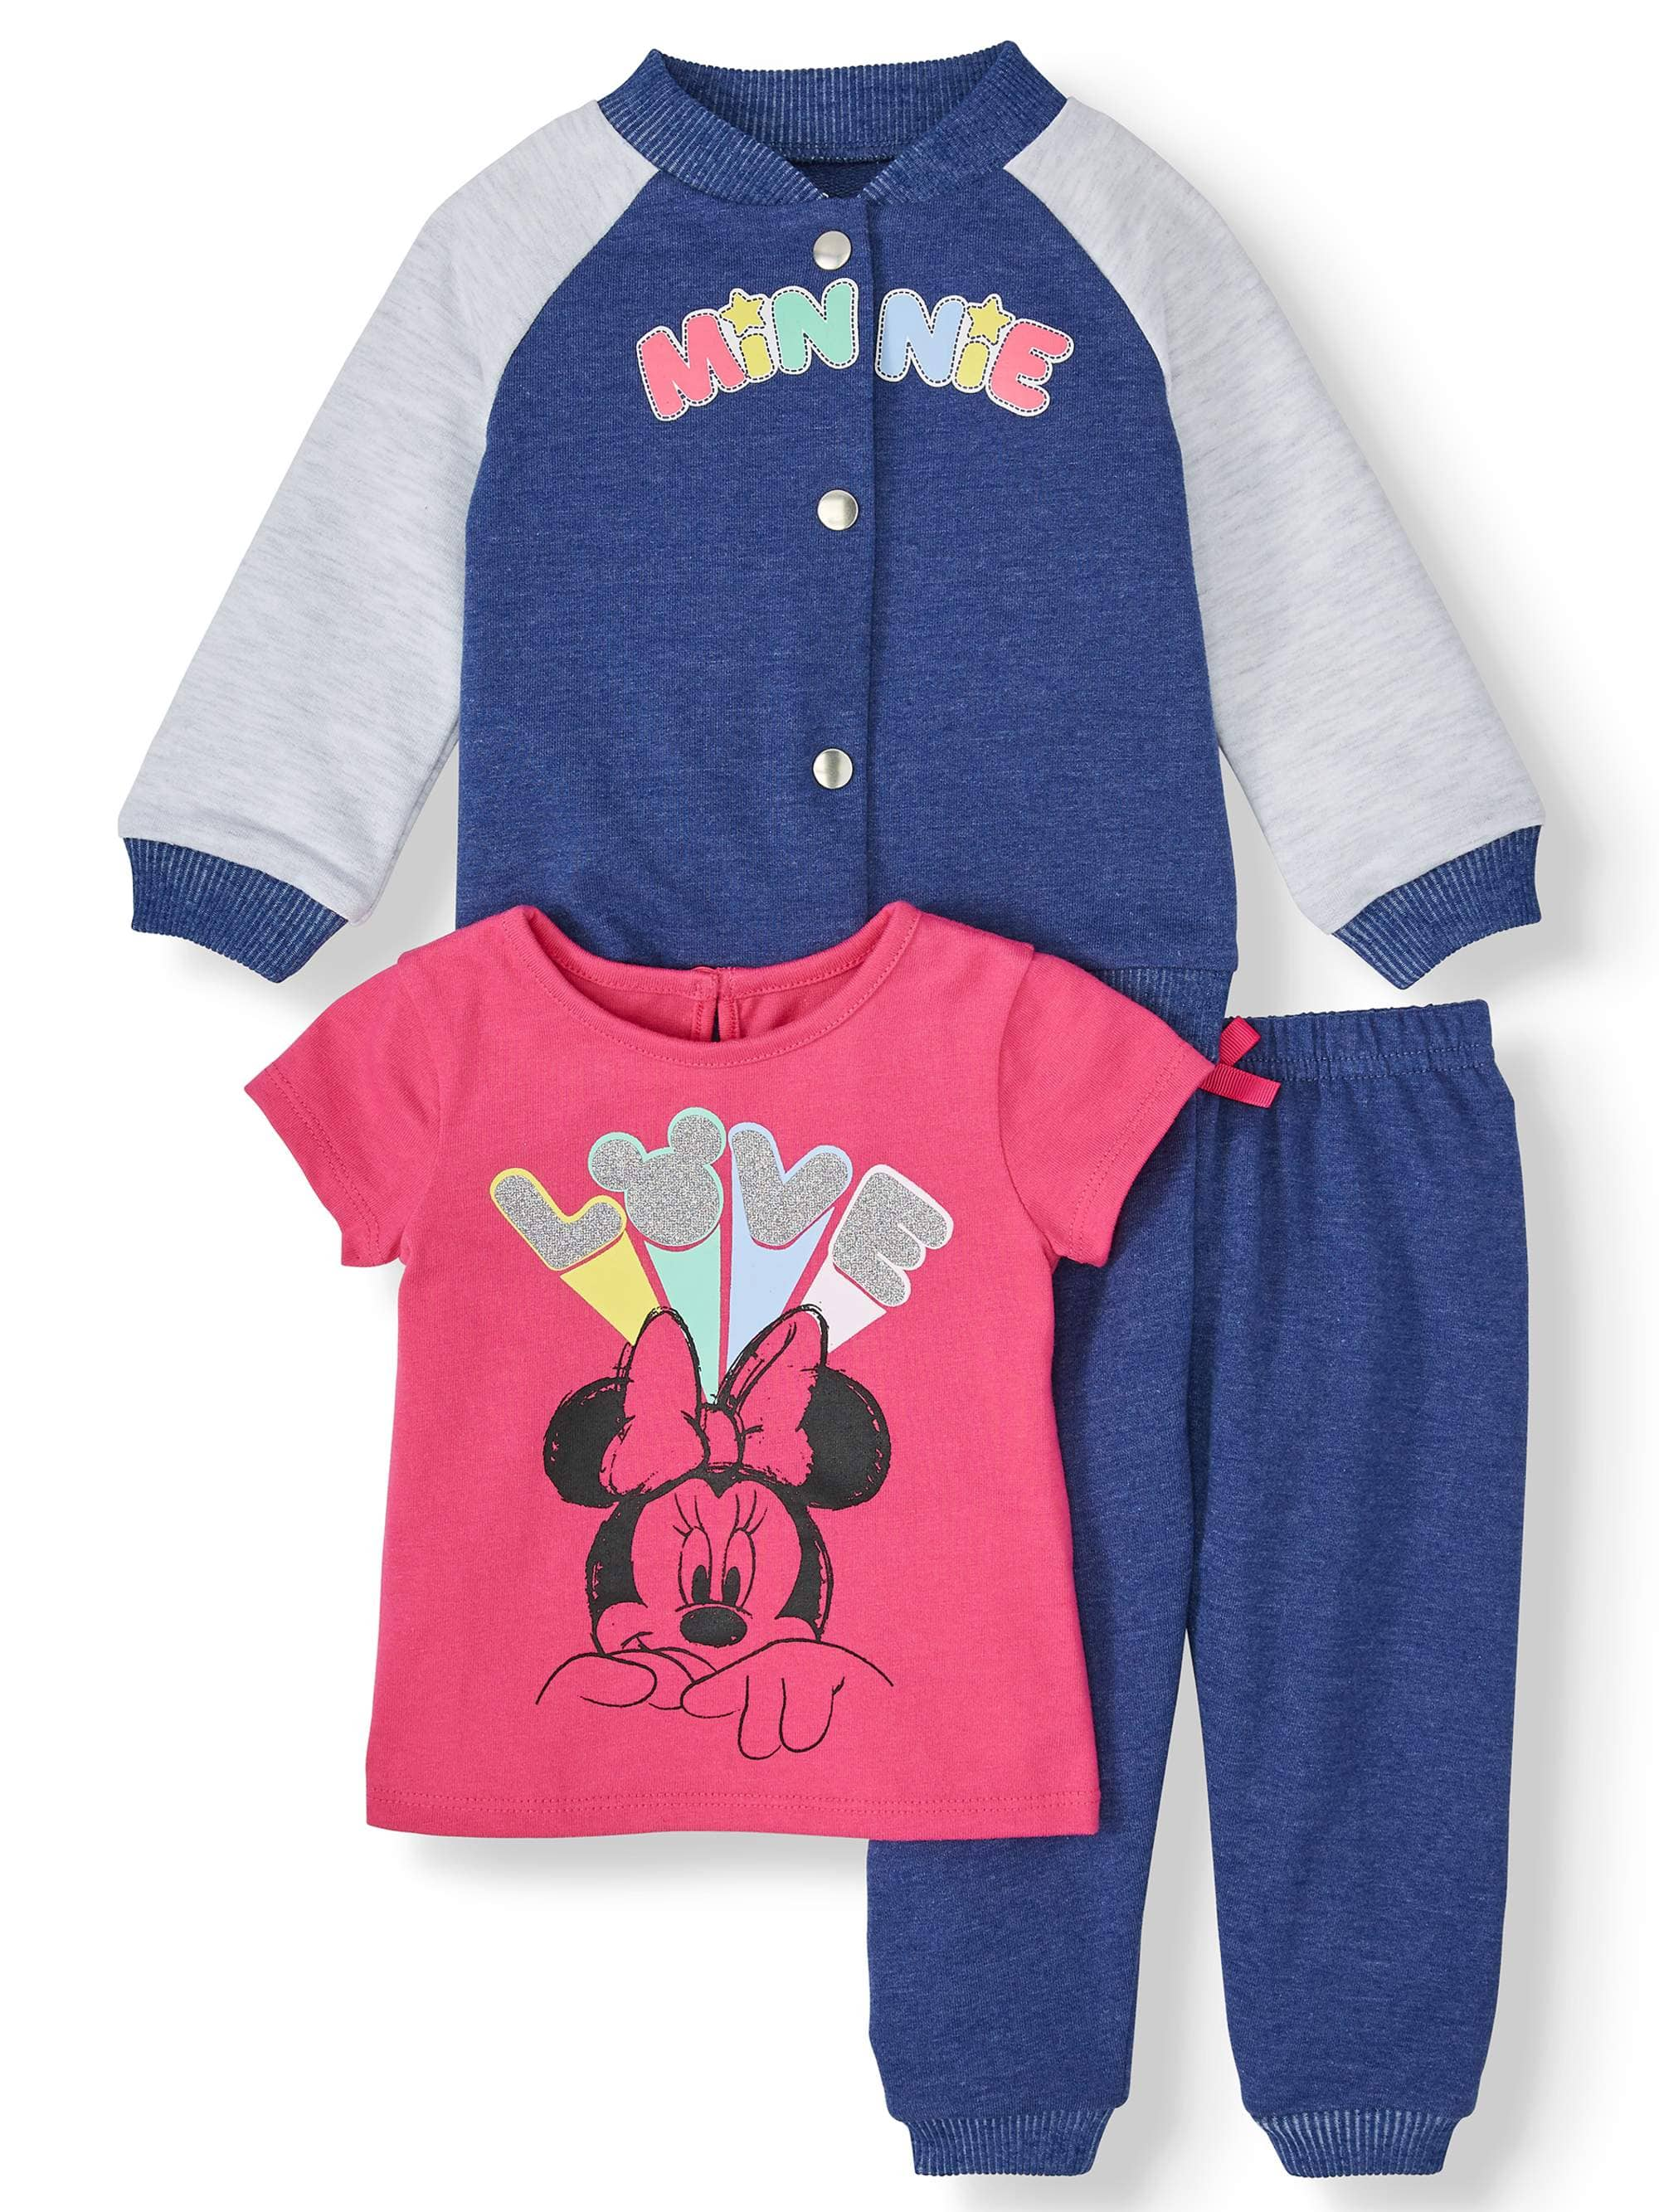 3-Piece Disney Baby Girl Minnie Mouse Outfit Set $10.50 + Free Store Pickup at Walmart